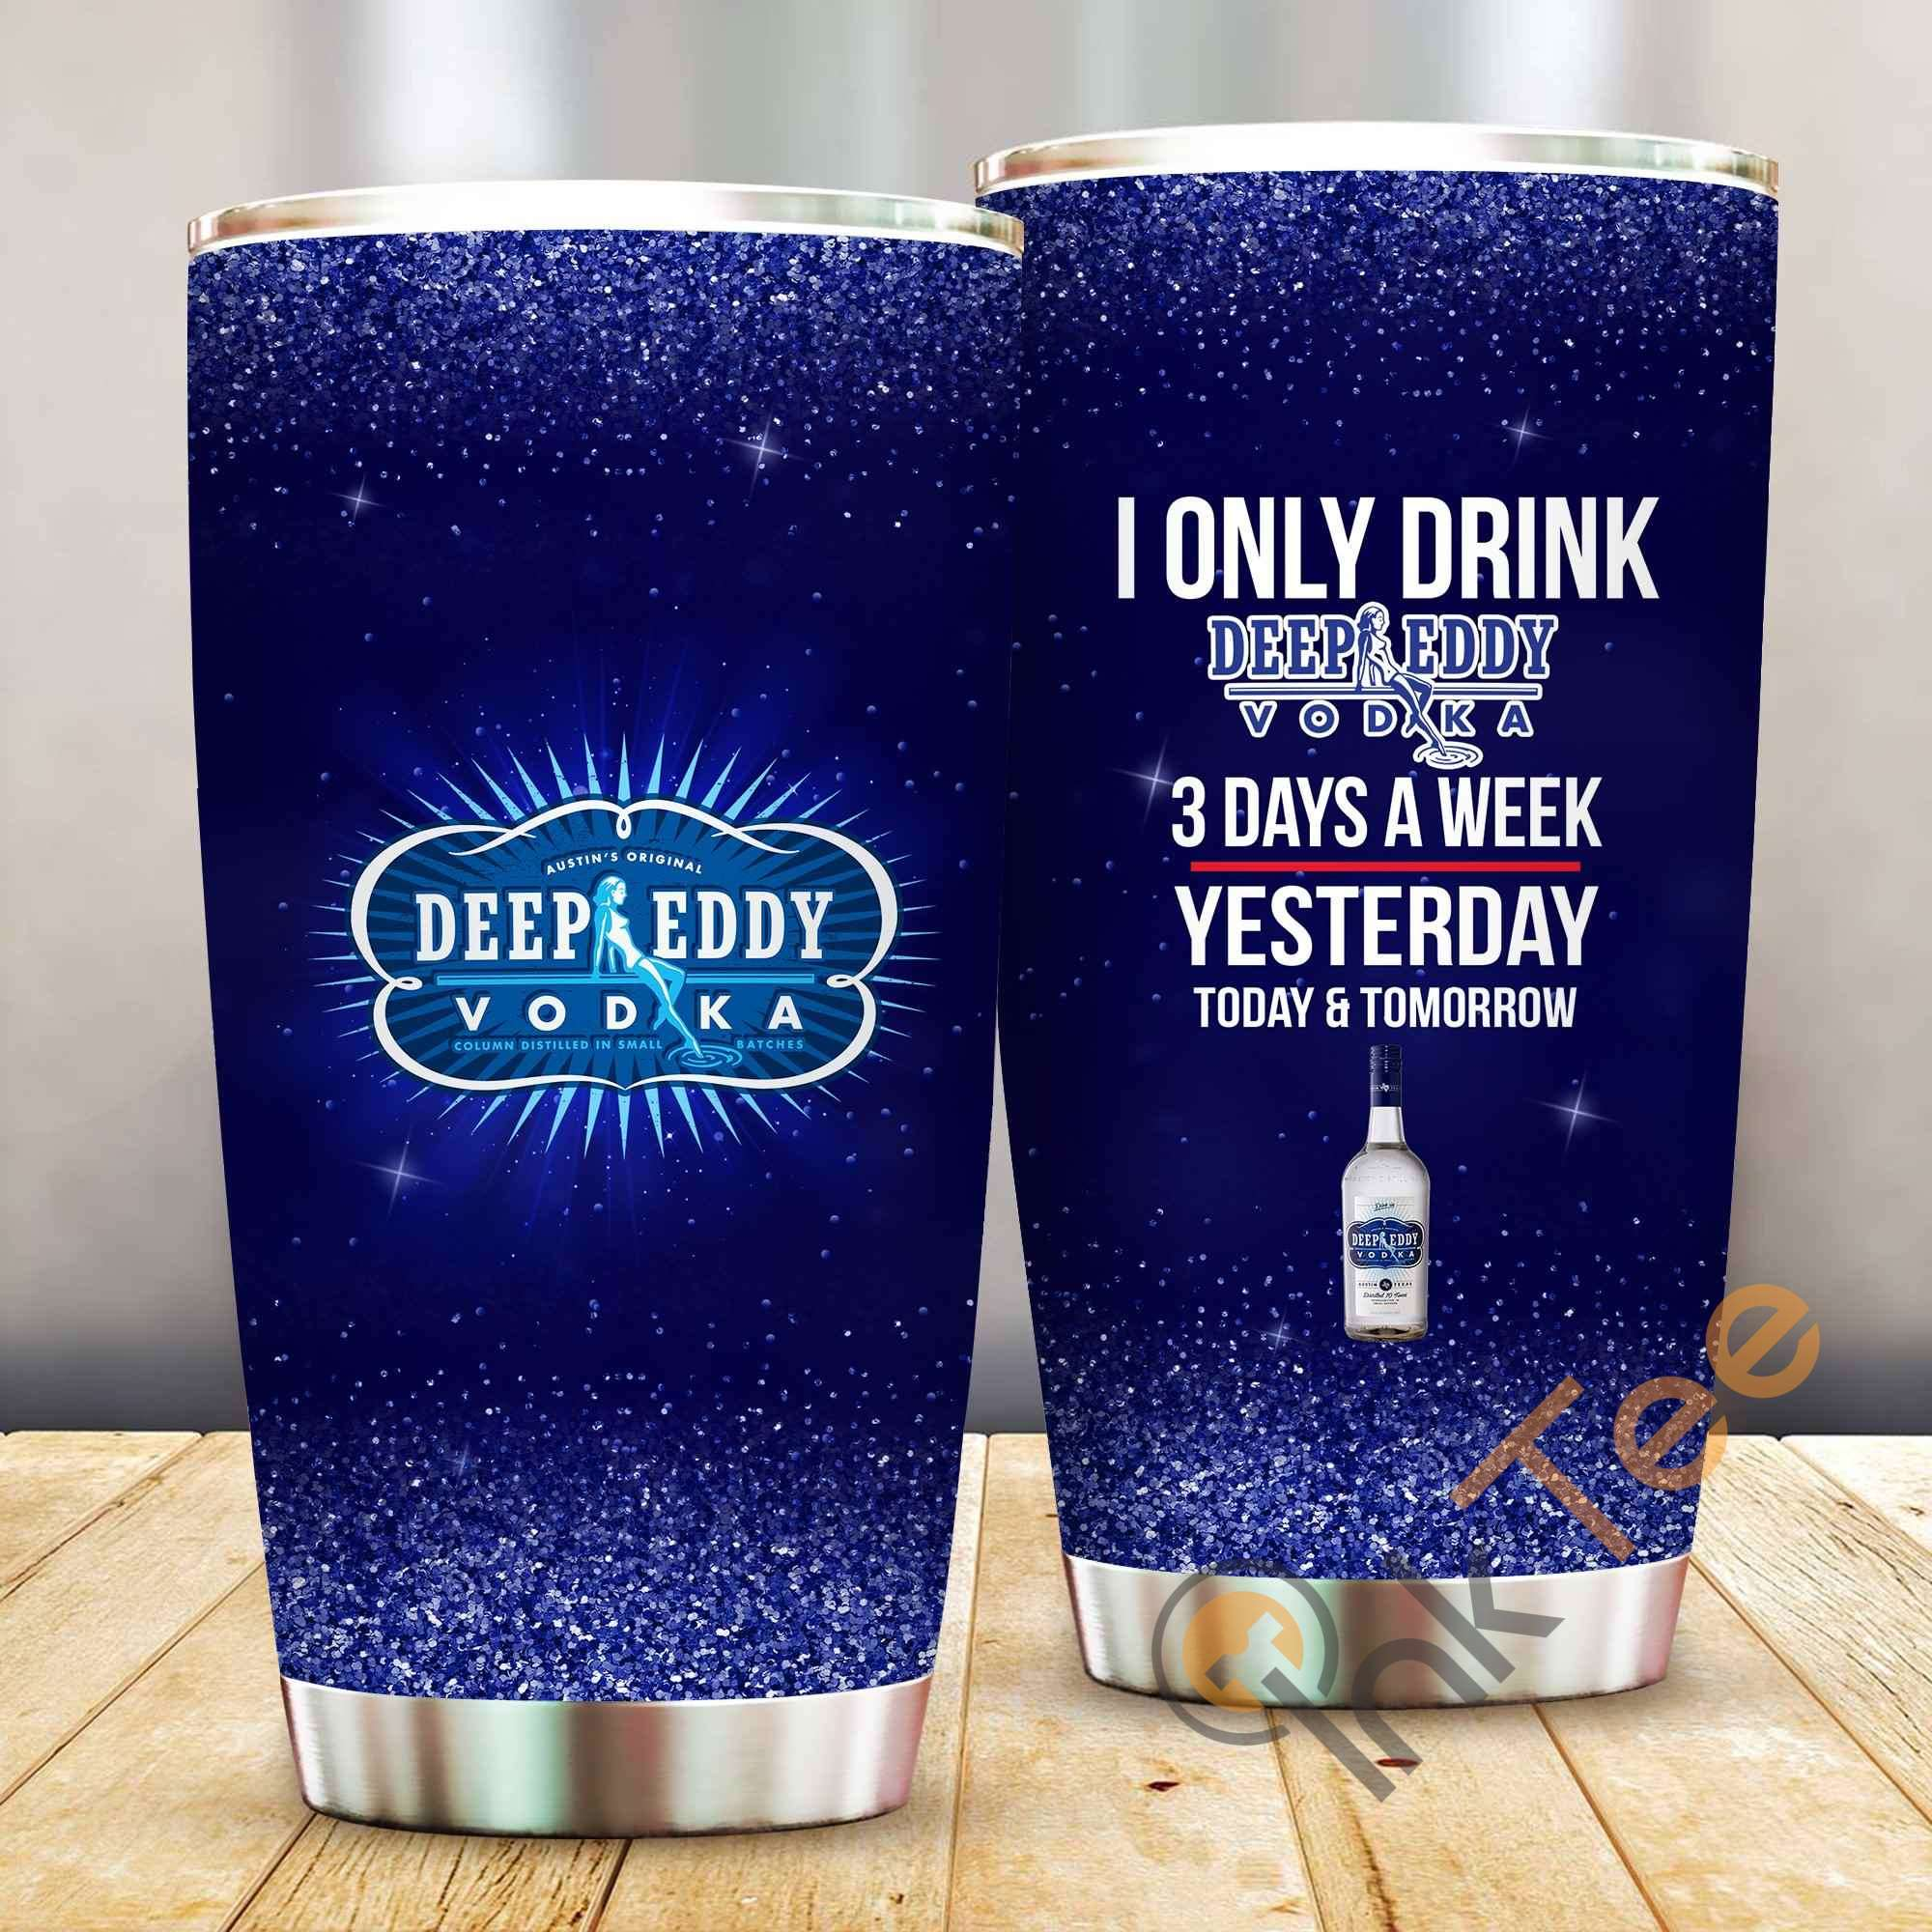 I Only Drink Deep Eddy Vodka 3 Days A Week Amazon Best Seller Sku 3999 Stainless Steel Tumbler